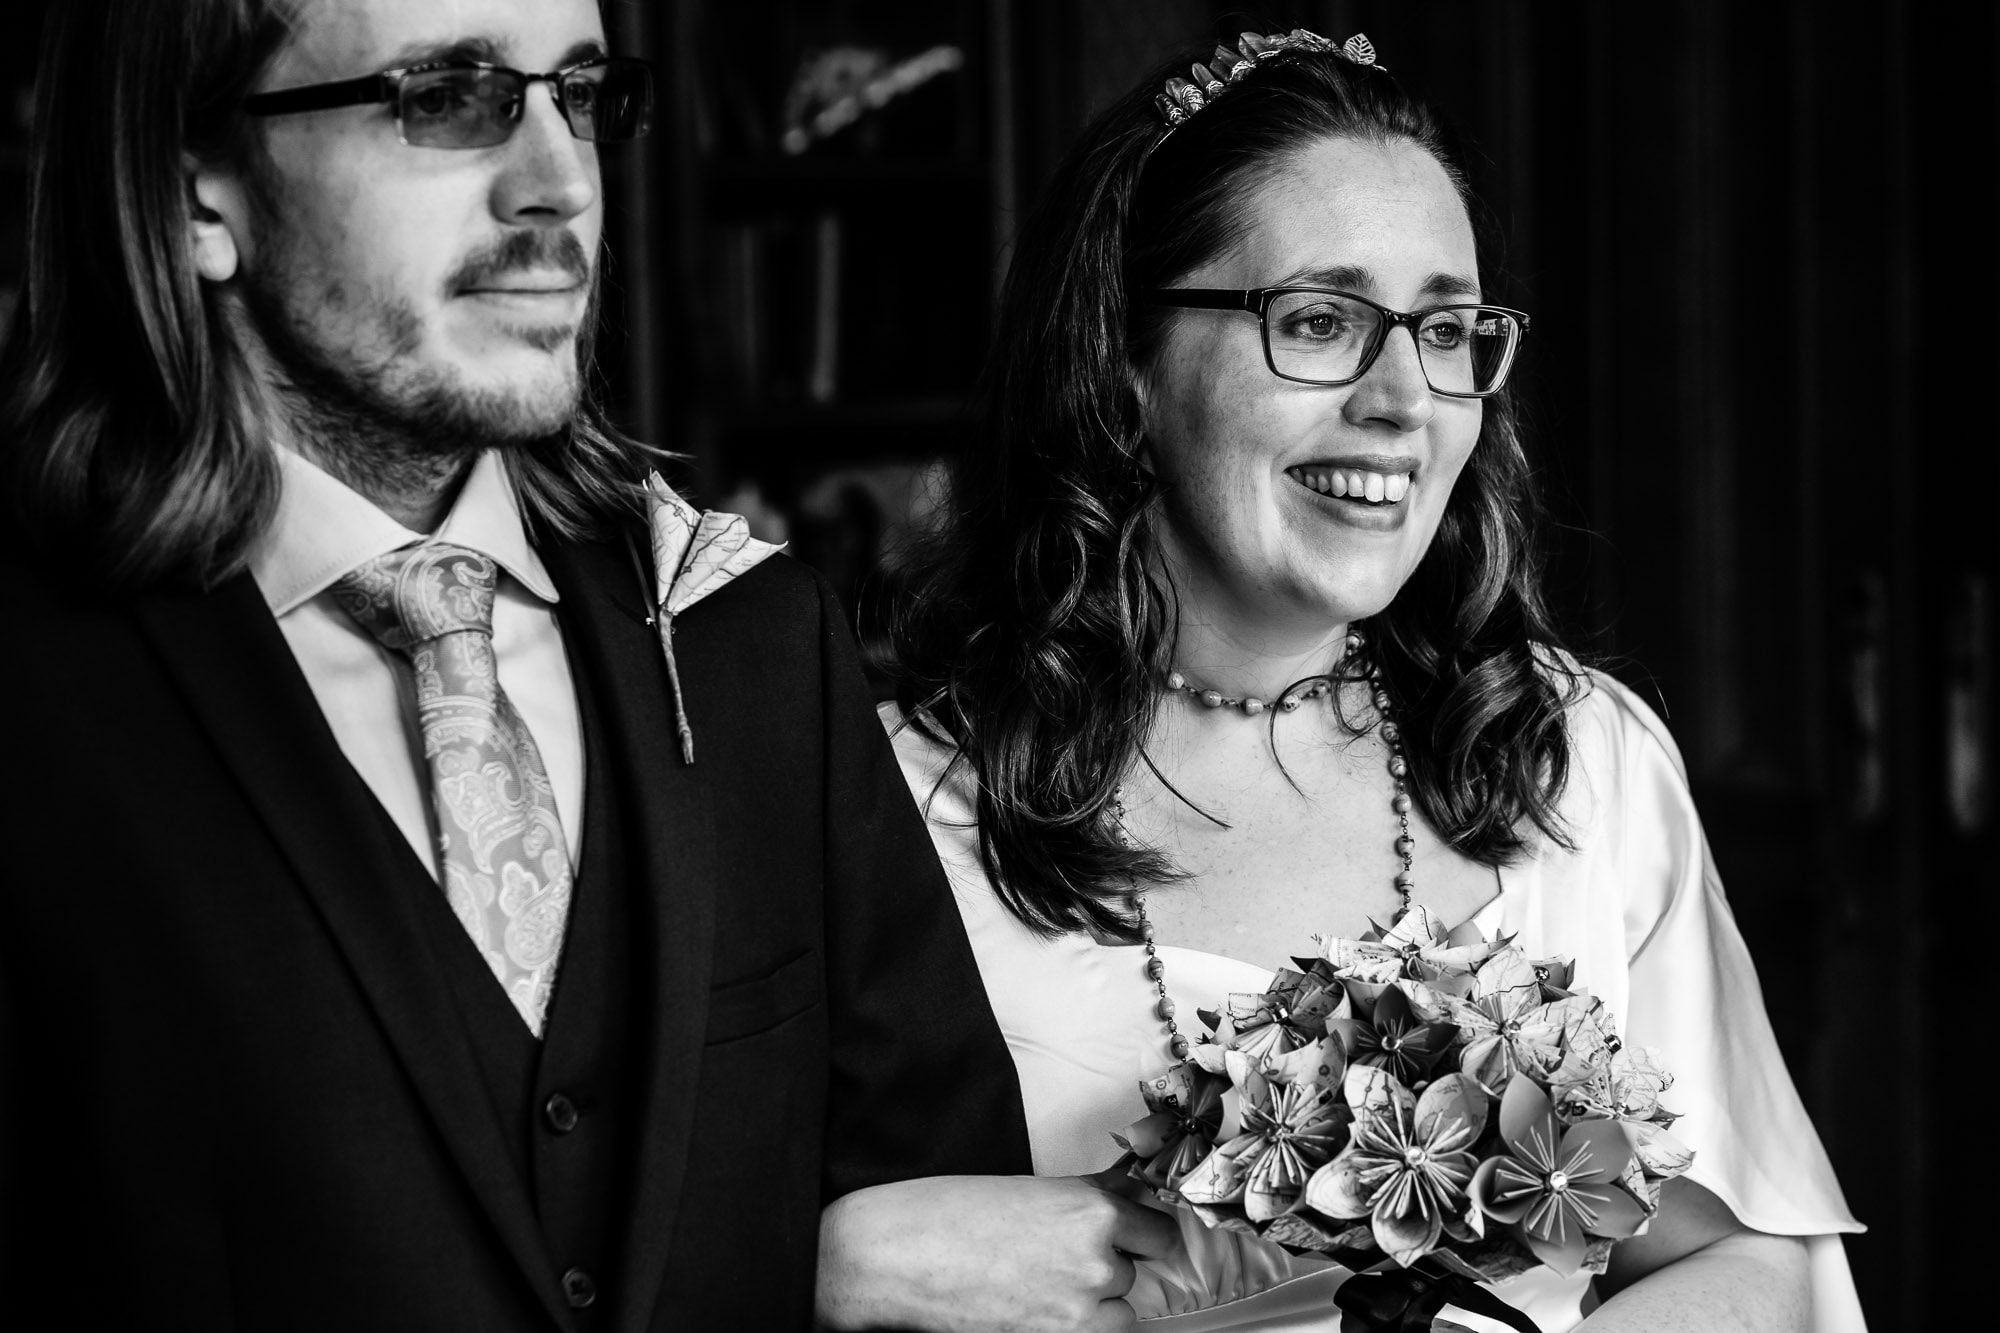 Bride and groom, during elopement wedding, bride is laughing. B&W photo.